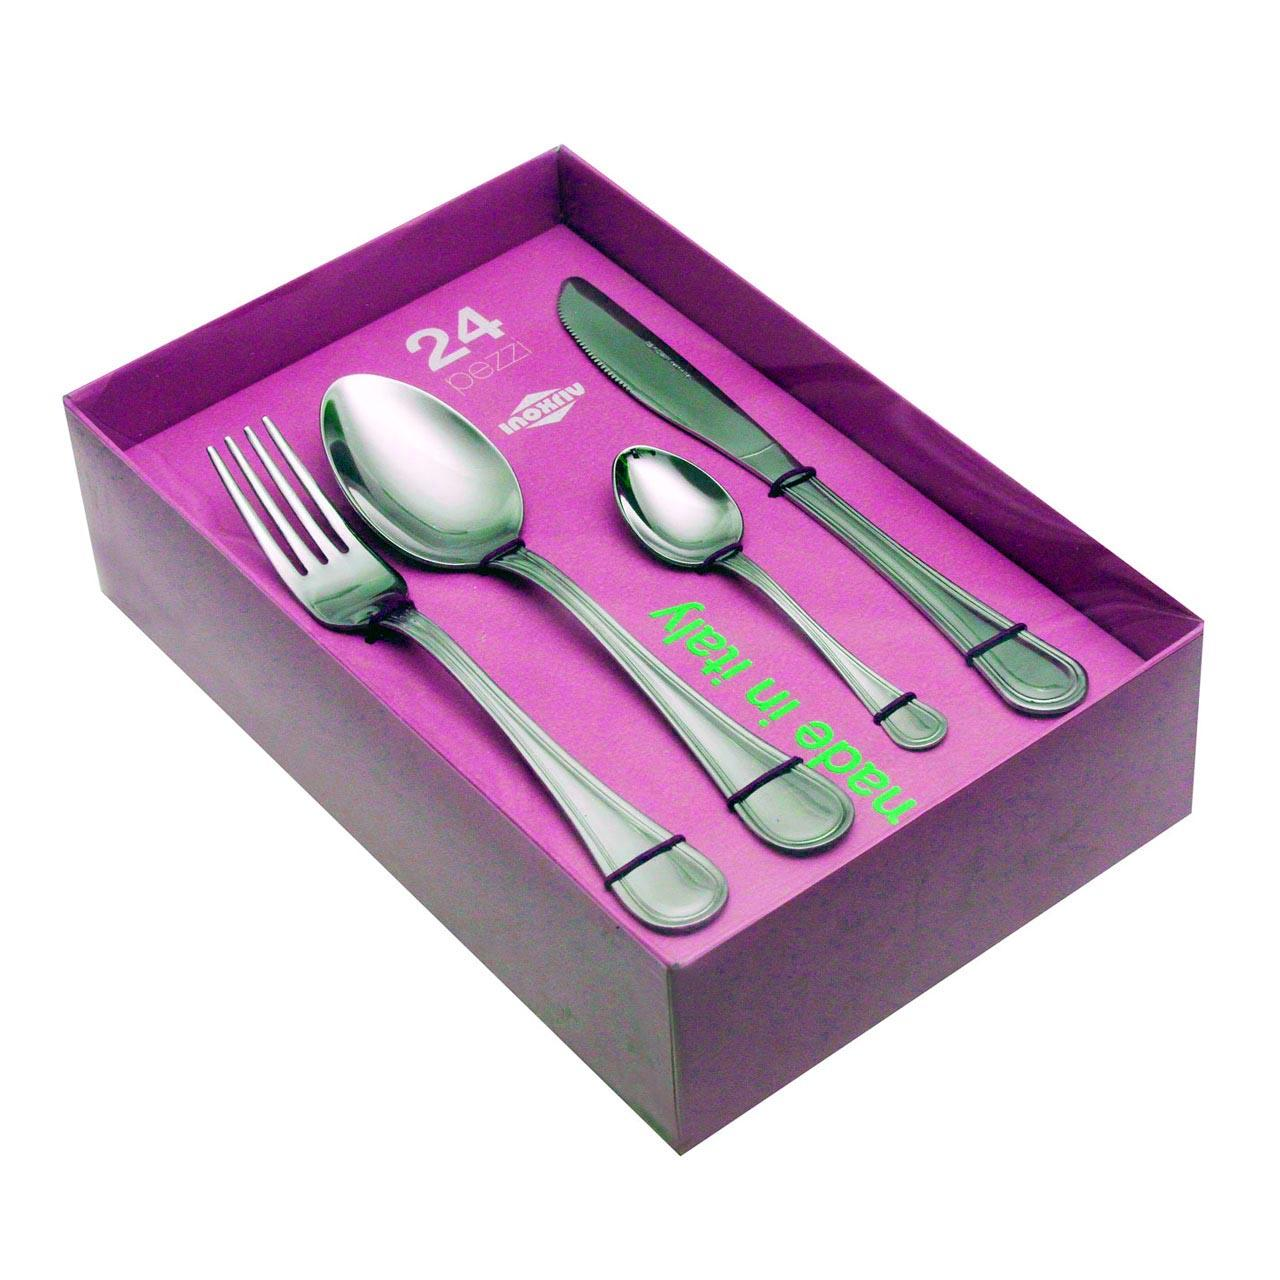 61319624 24 pcs. cutlery set Diana knife Natura Box